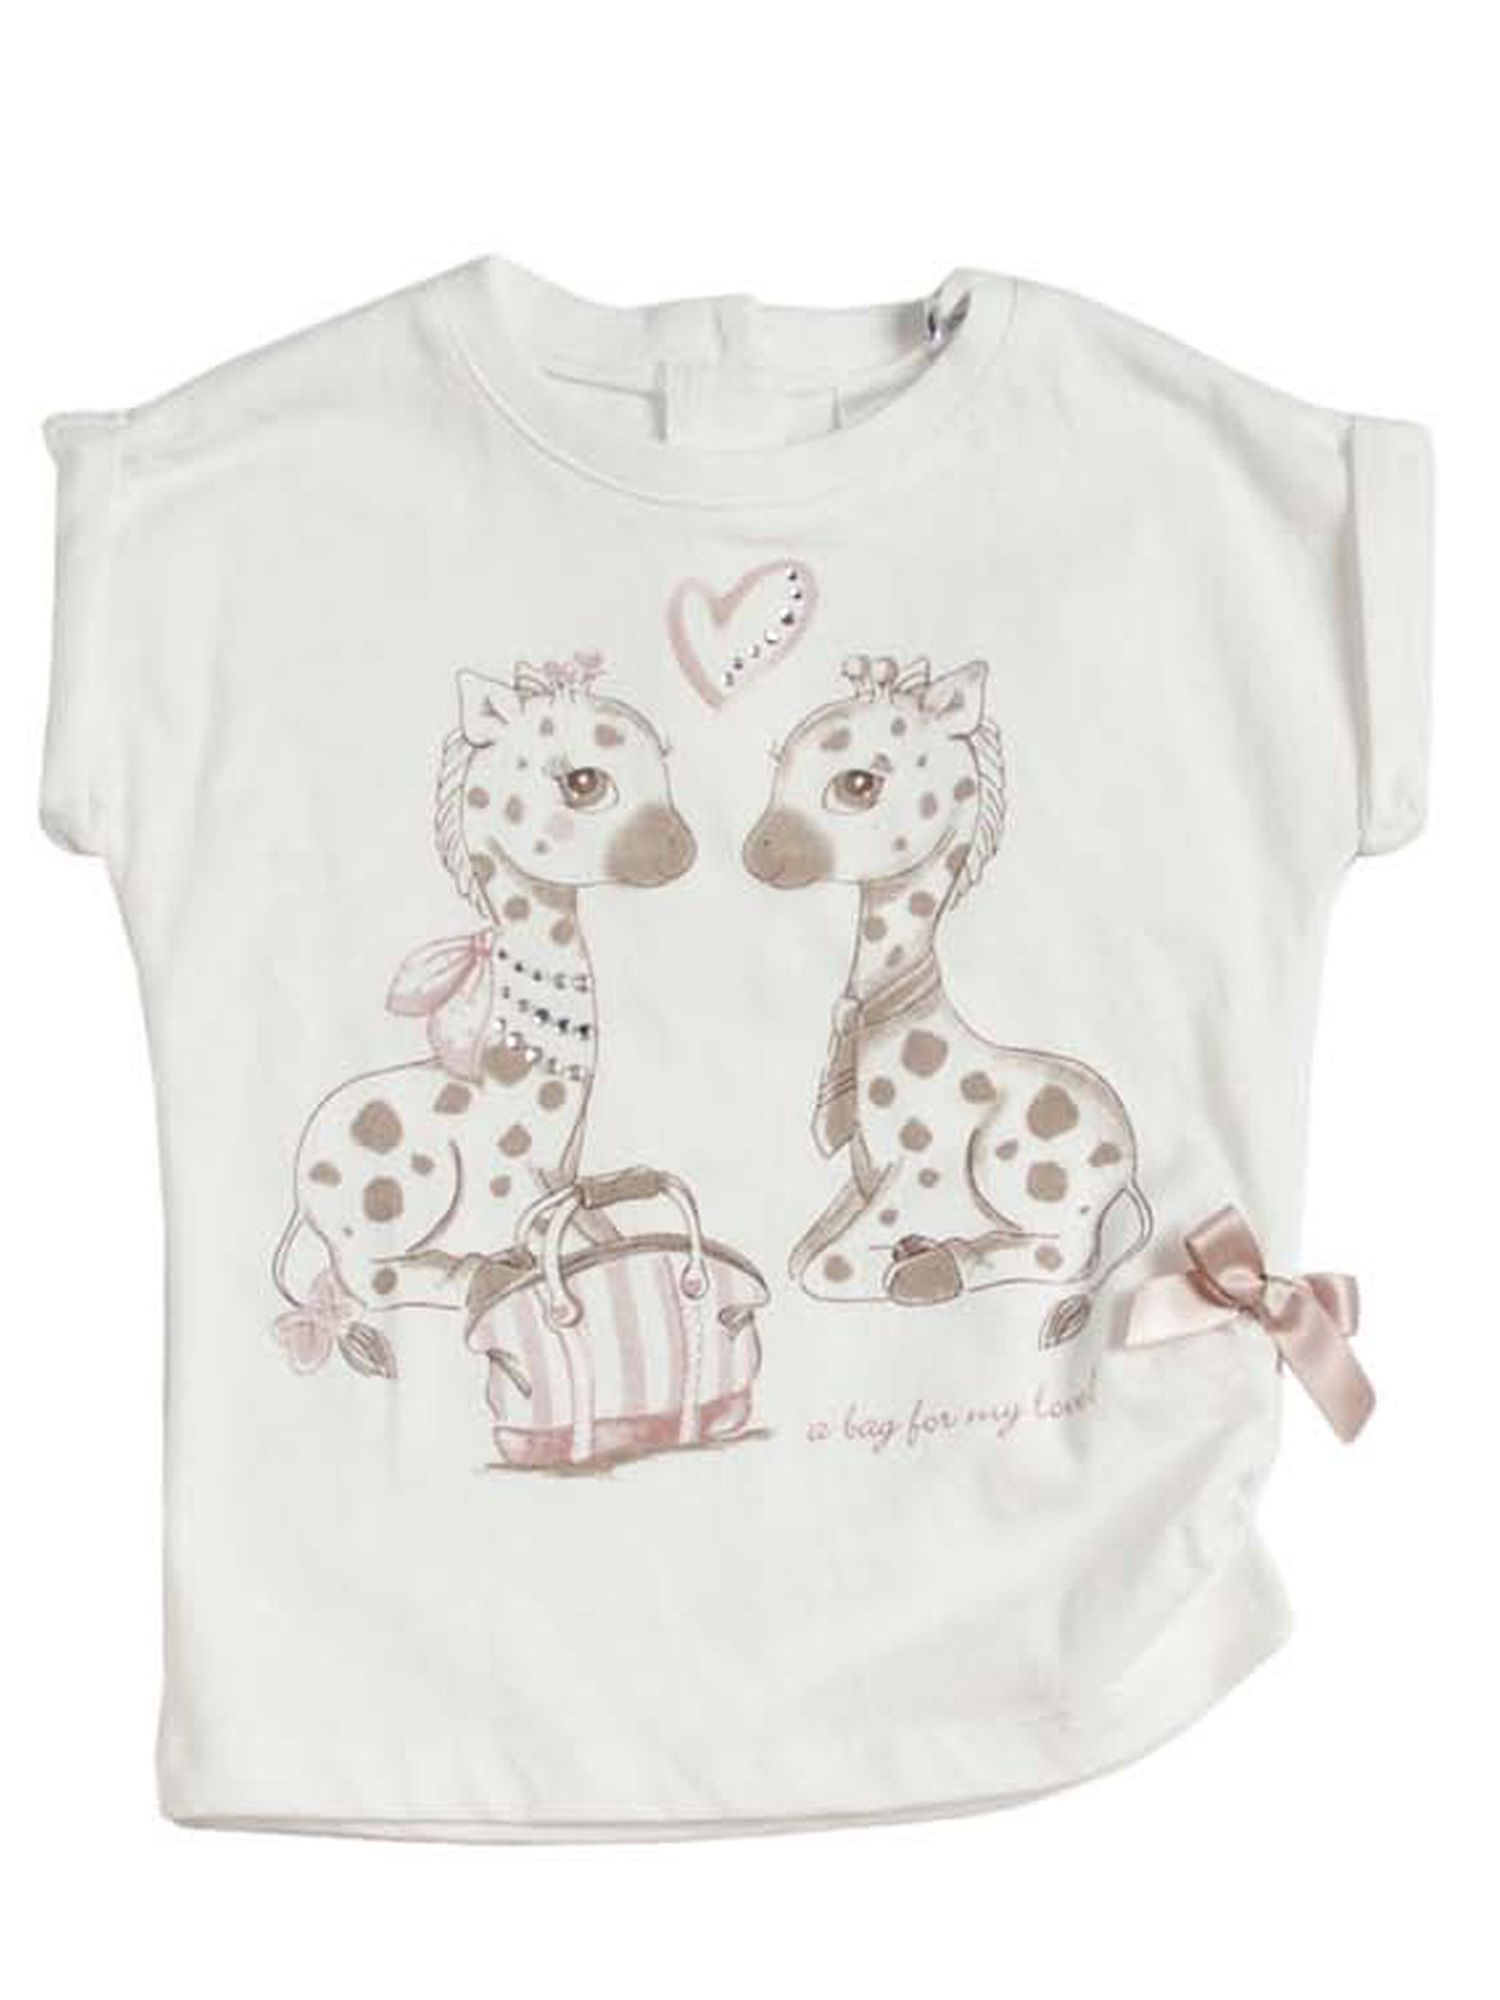 Girls camouflage printed t-shirt